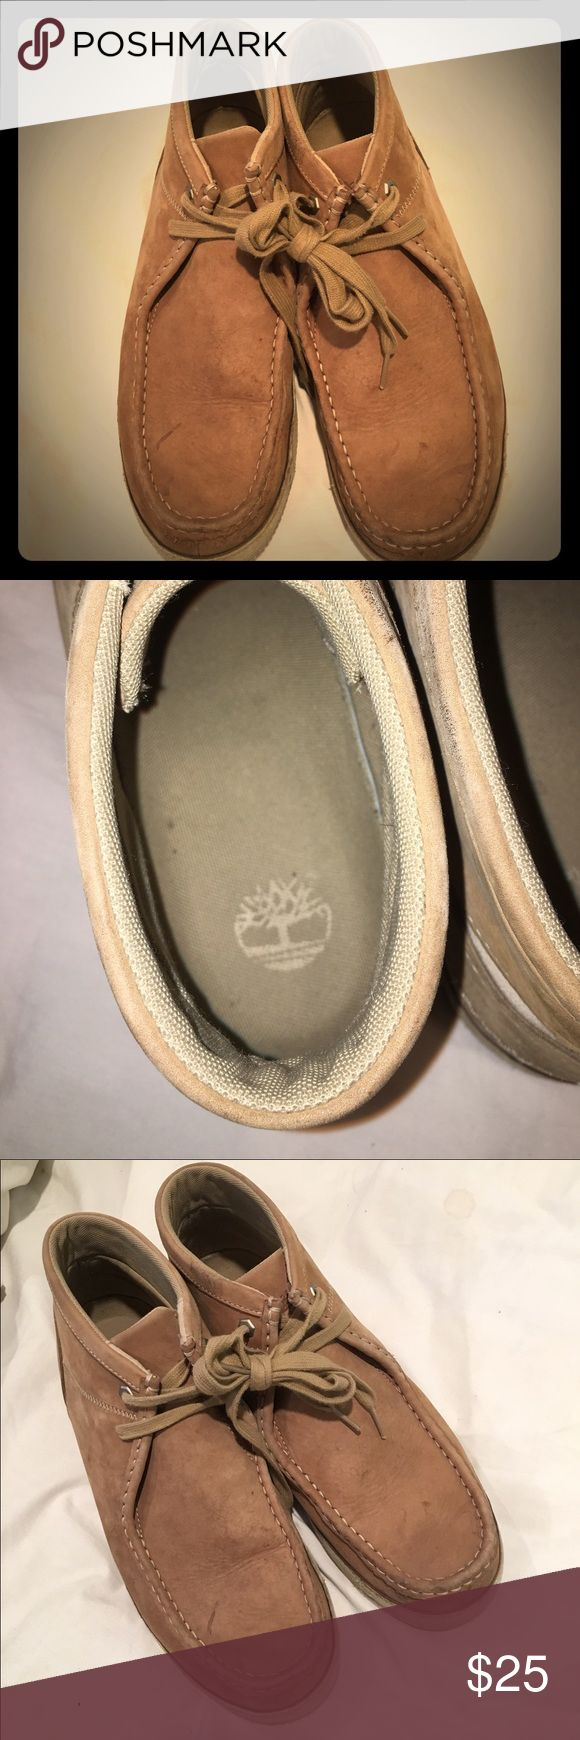 Timberland Beige Suede Ridgefield Wallaby Chukka These boots have are pre-loved but are on great condition, nothing really wrong with them. Size 12M, great ankle boots! Timberland Shoes Chukka Boots